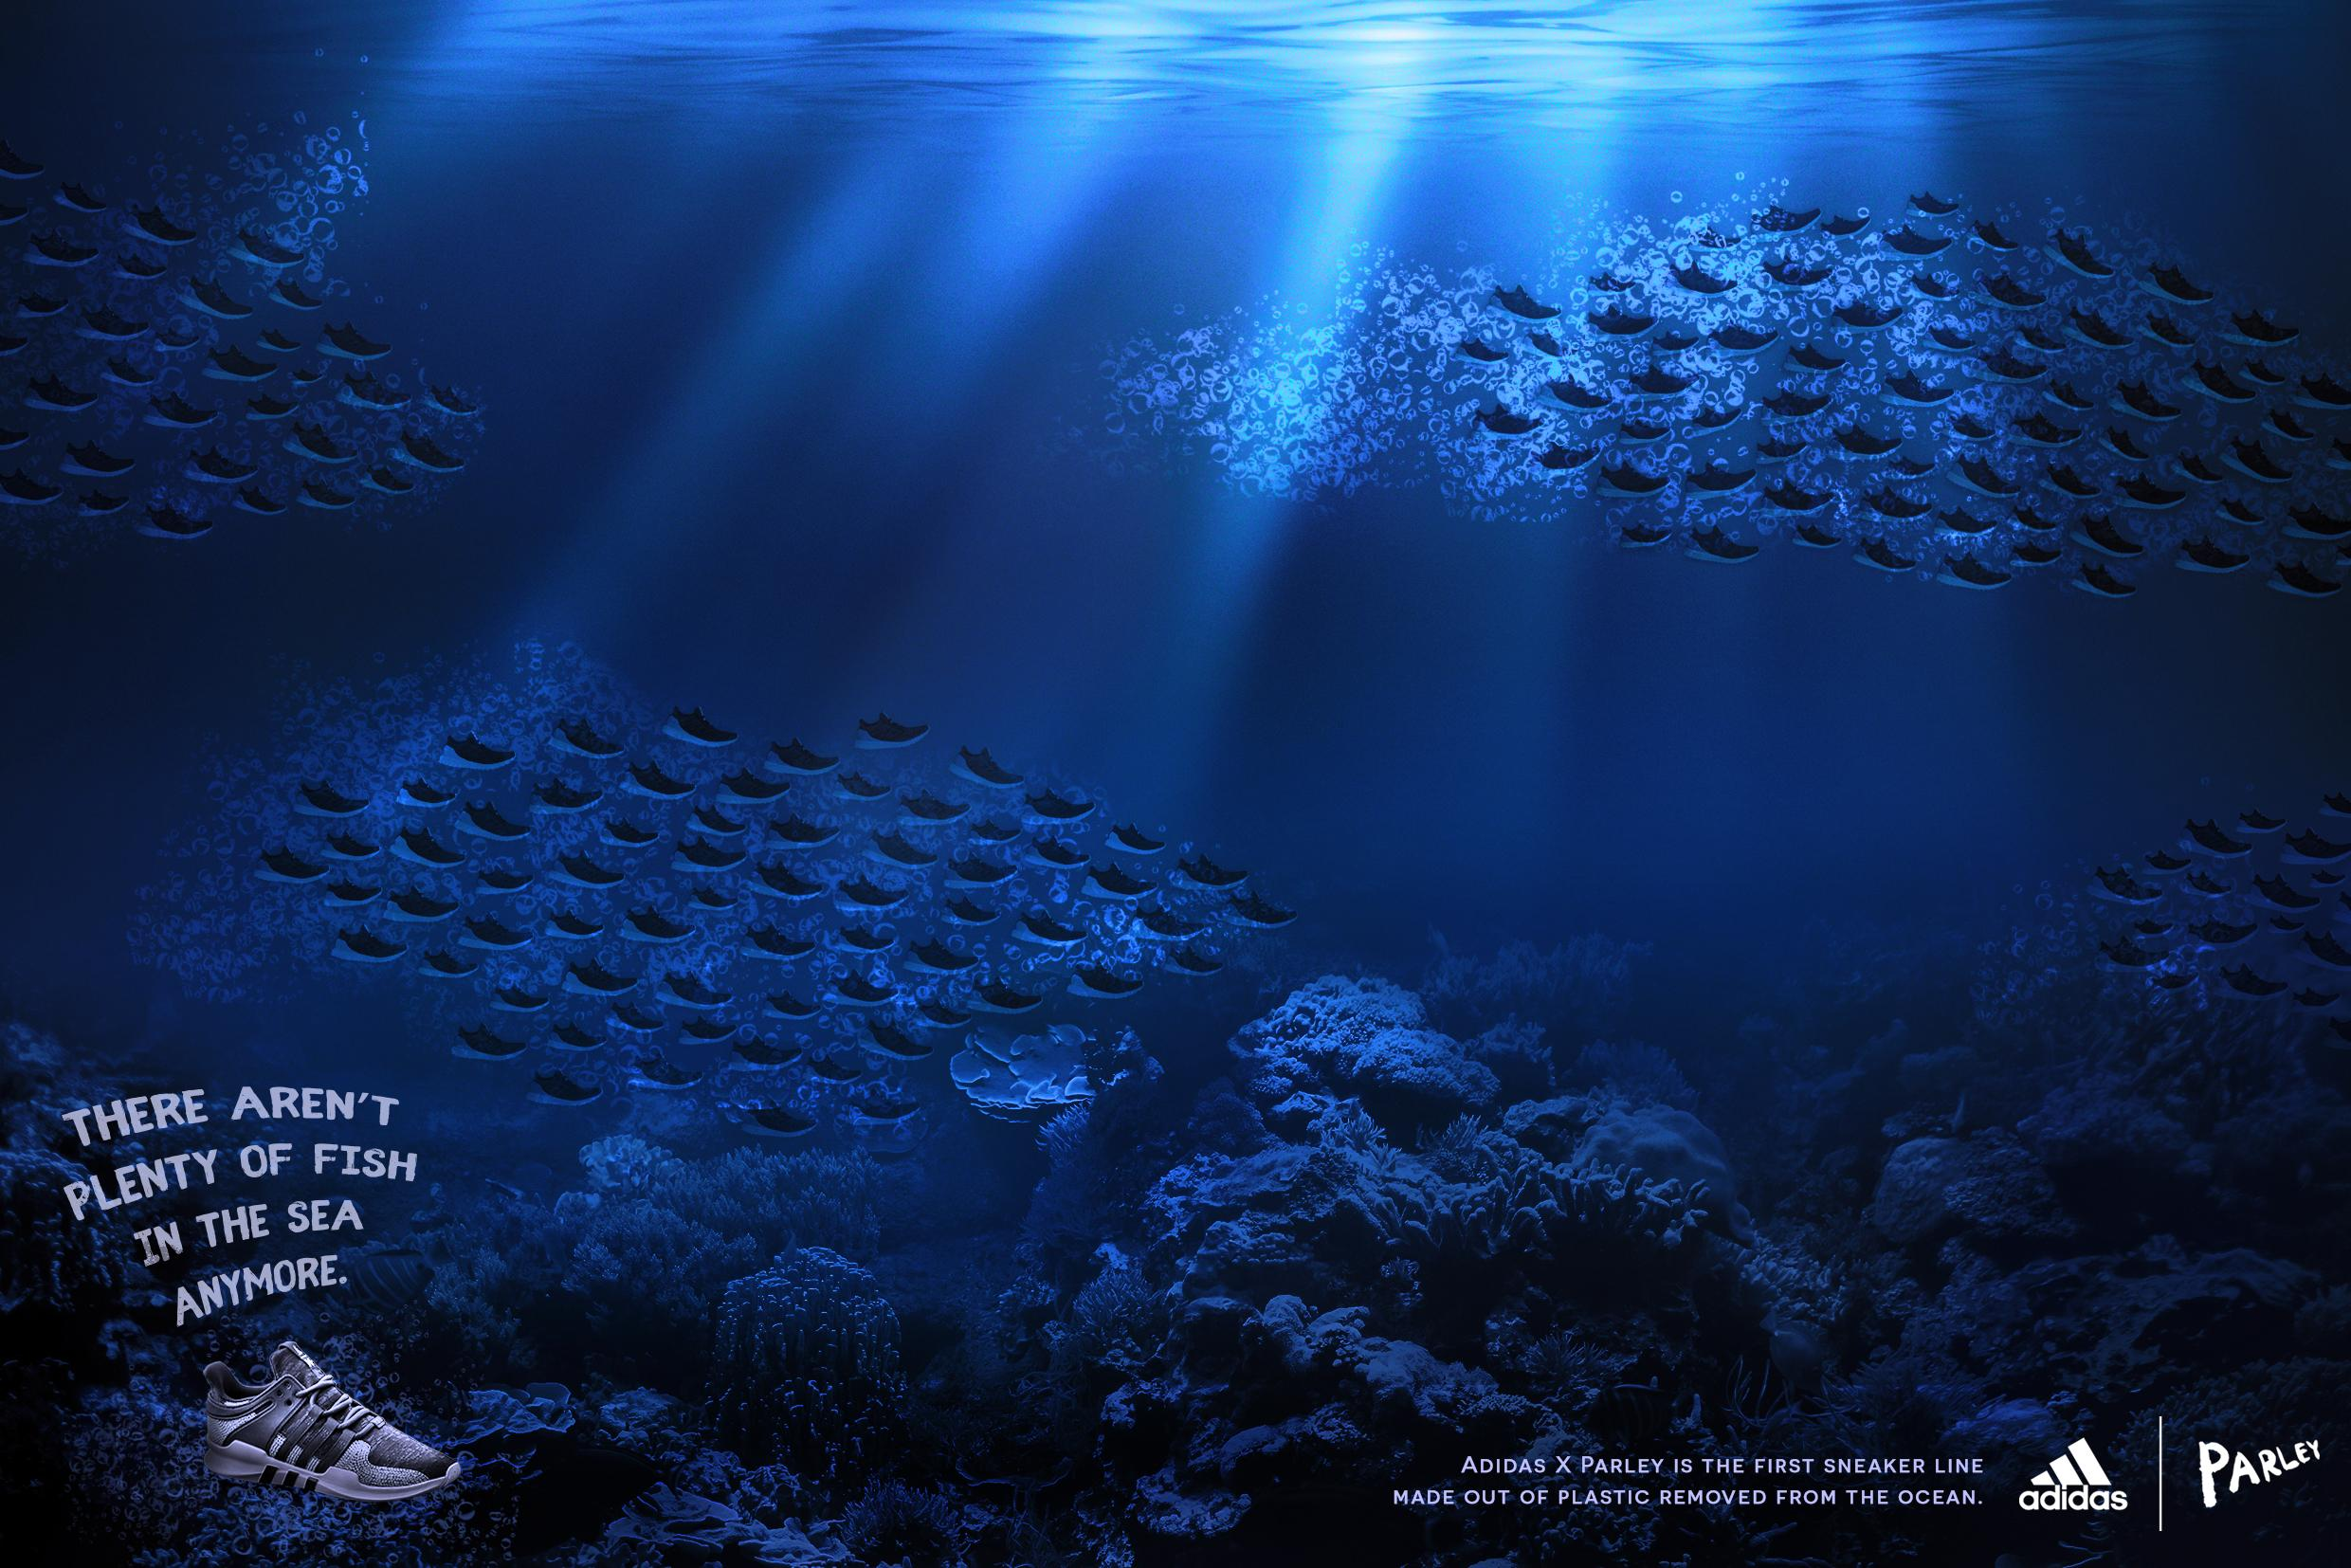 Adidas Print Ad - There Aren't Plenty of Fish in the Sea Anymore